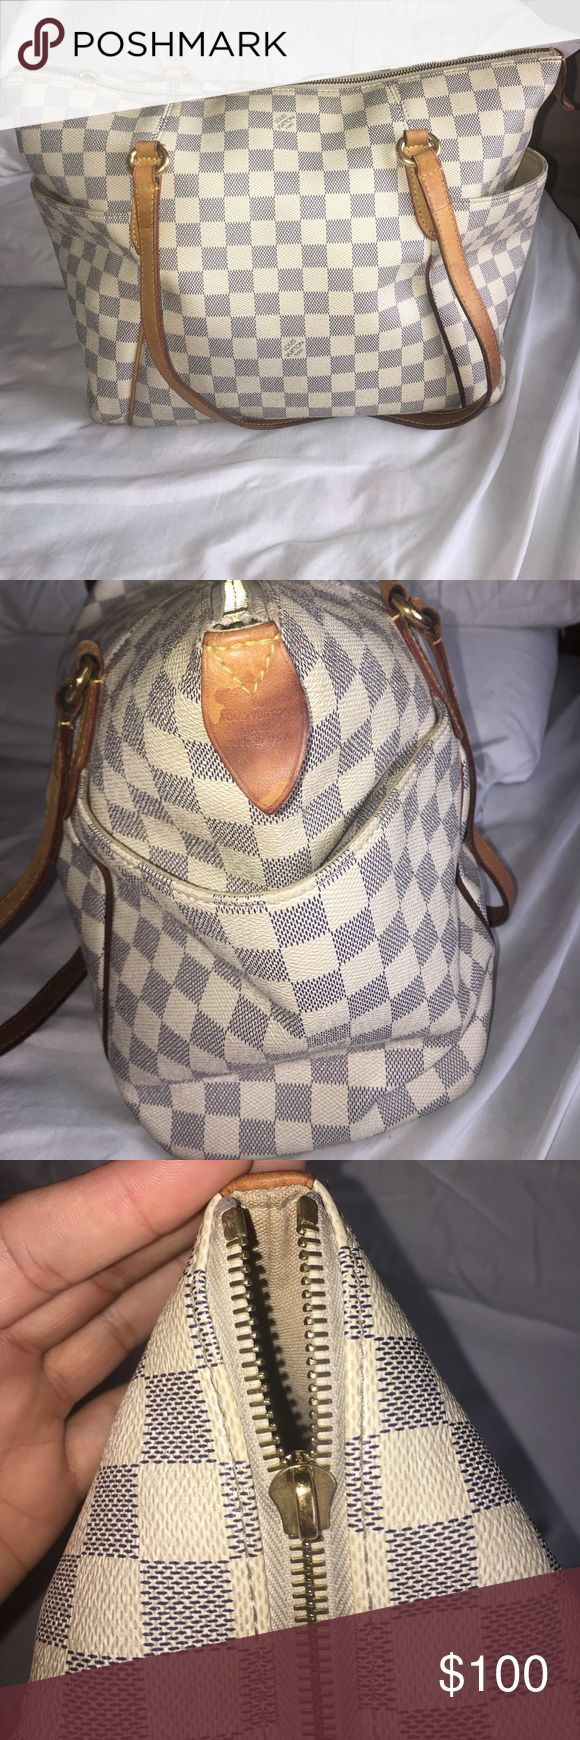 Authentic Louis Vuitton Bag 100% Authentic. Zipper broke off but you are still able to zip it. Has some wear as this is pretty old. See pics and let me know if you have any questions. Louis Vuitton Bags